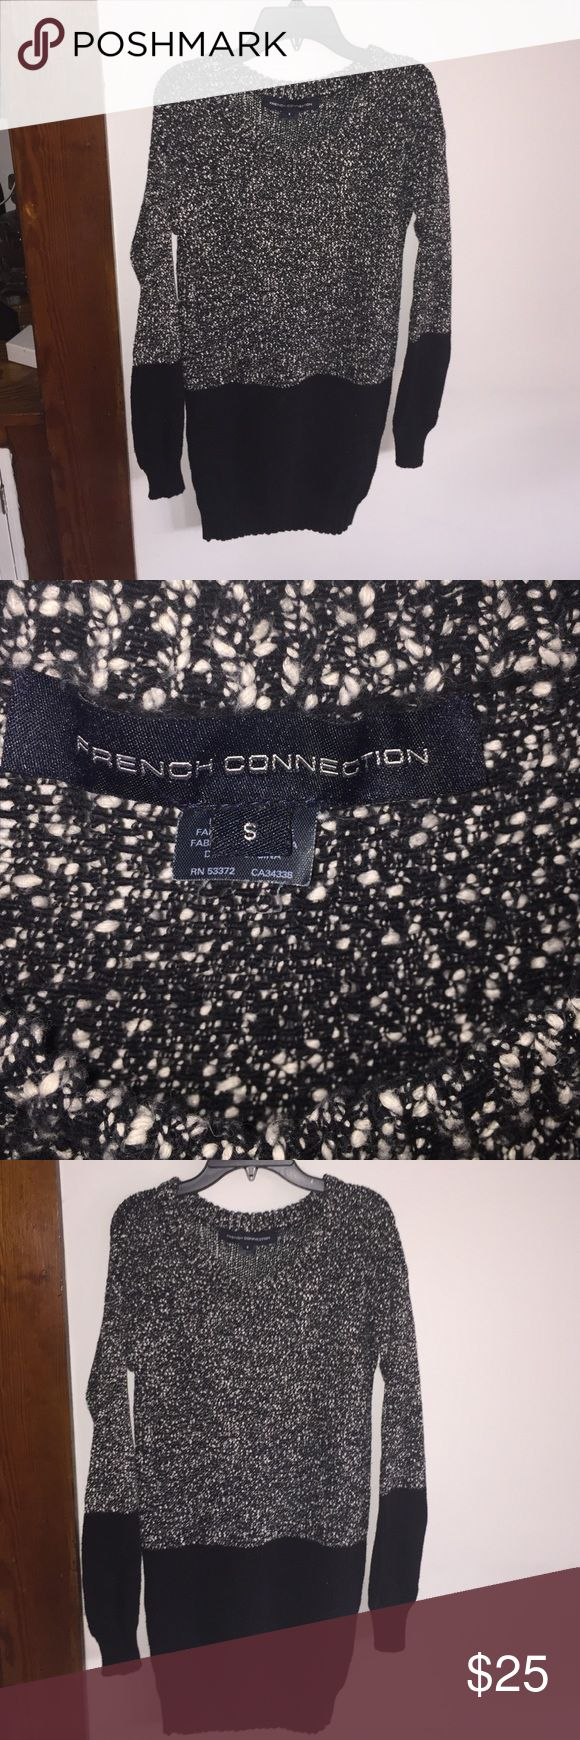 French connection tunic sweater Black marled tunic sweater. Great with leggings!! French Connection Sweaters Crew & Scoop Necks